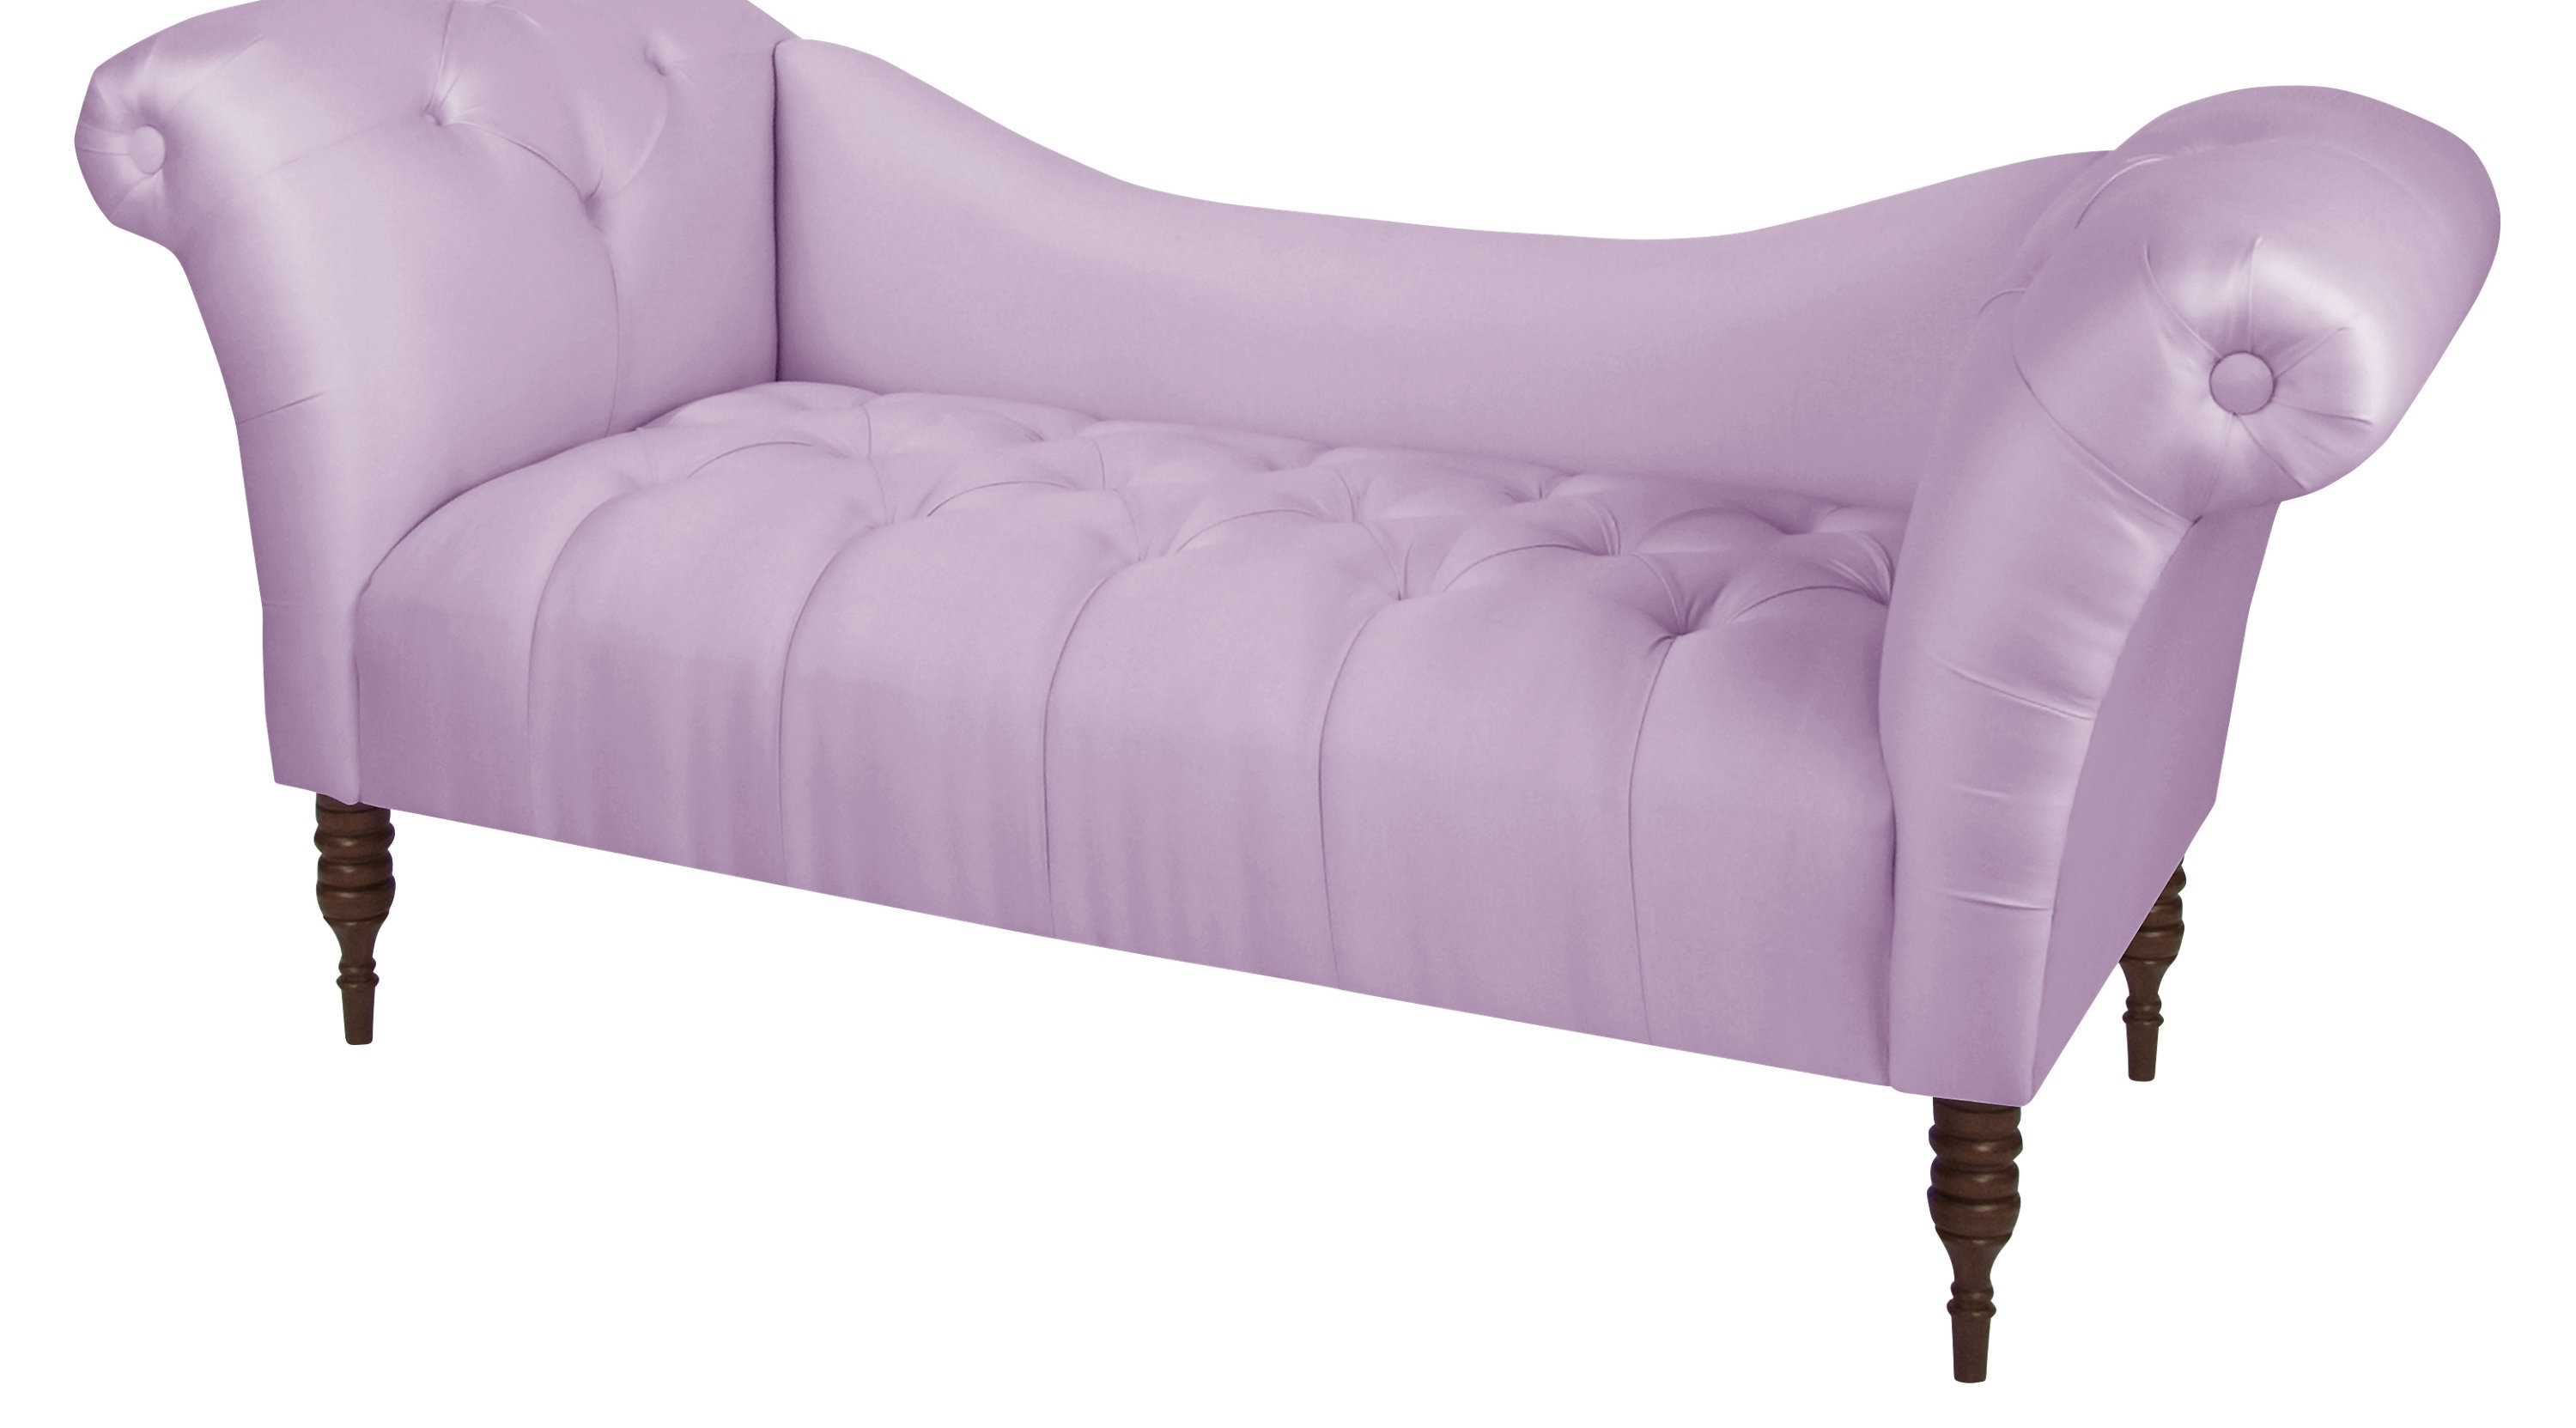 Kids Chaises Regarding Most Up To Date Chaises – Chaise Lounge Sofas (View 10 of 15)